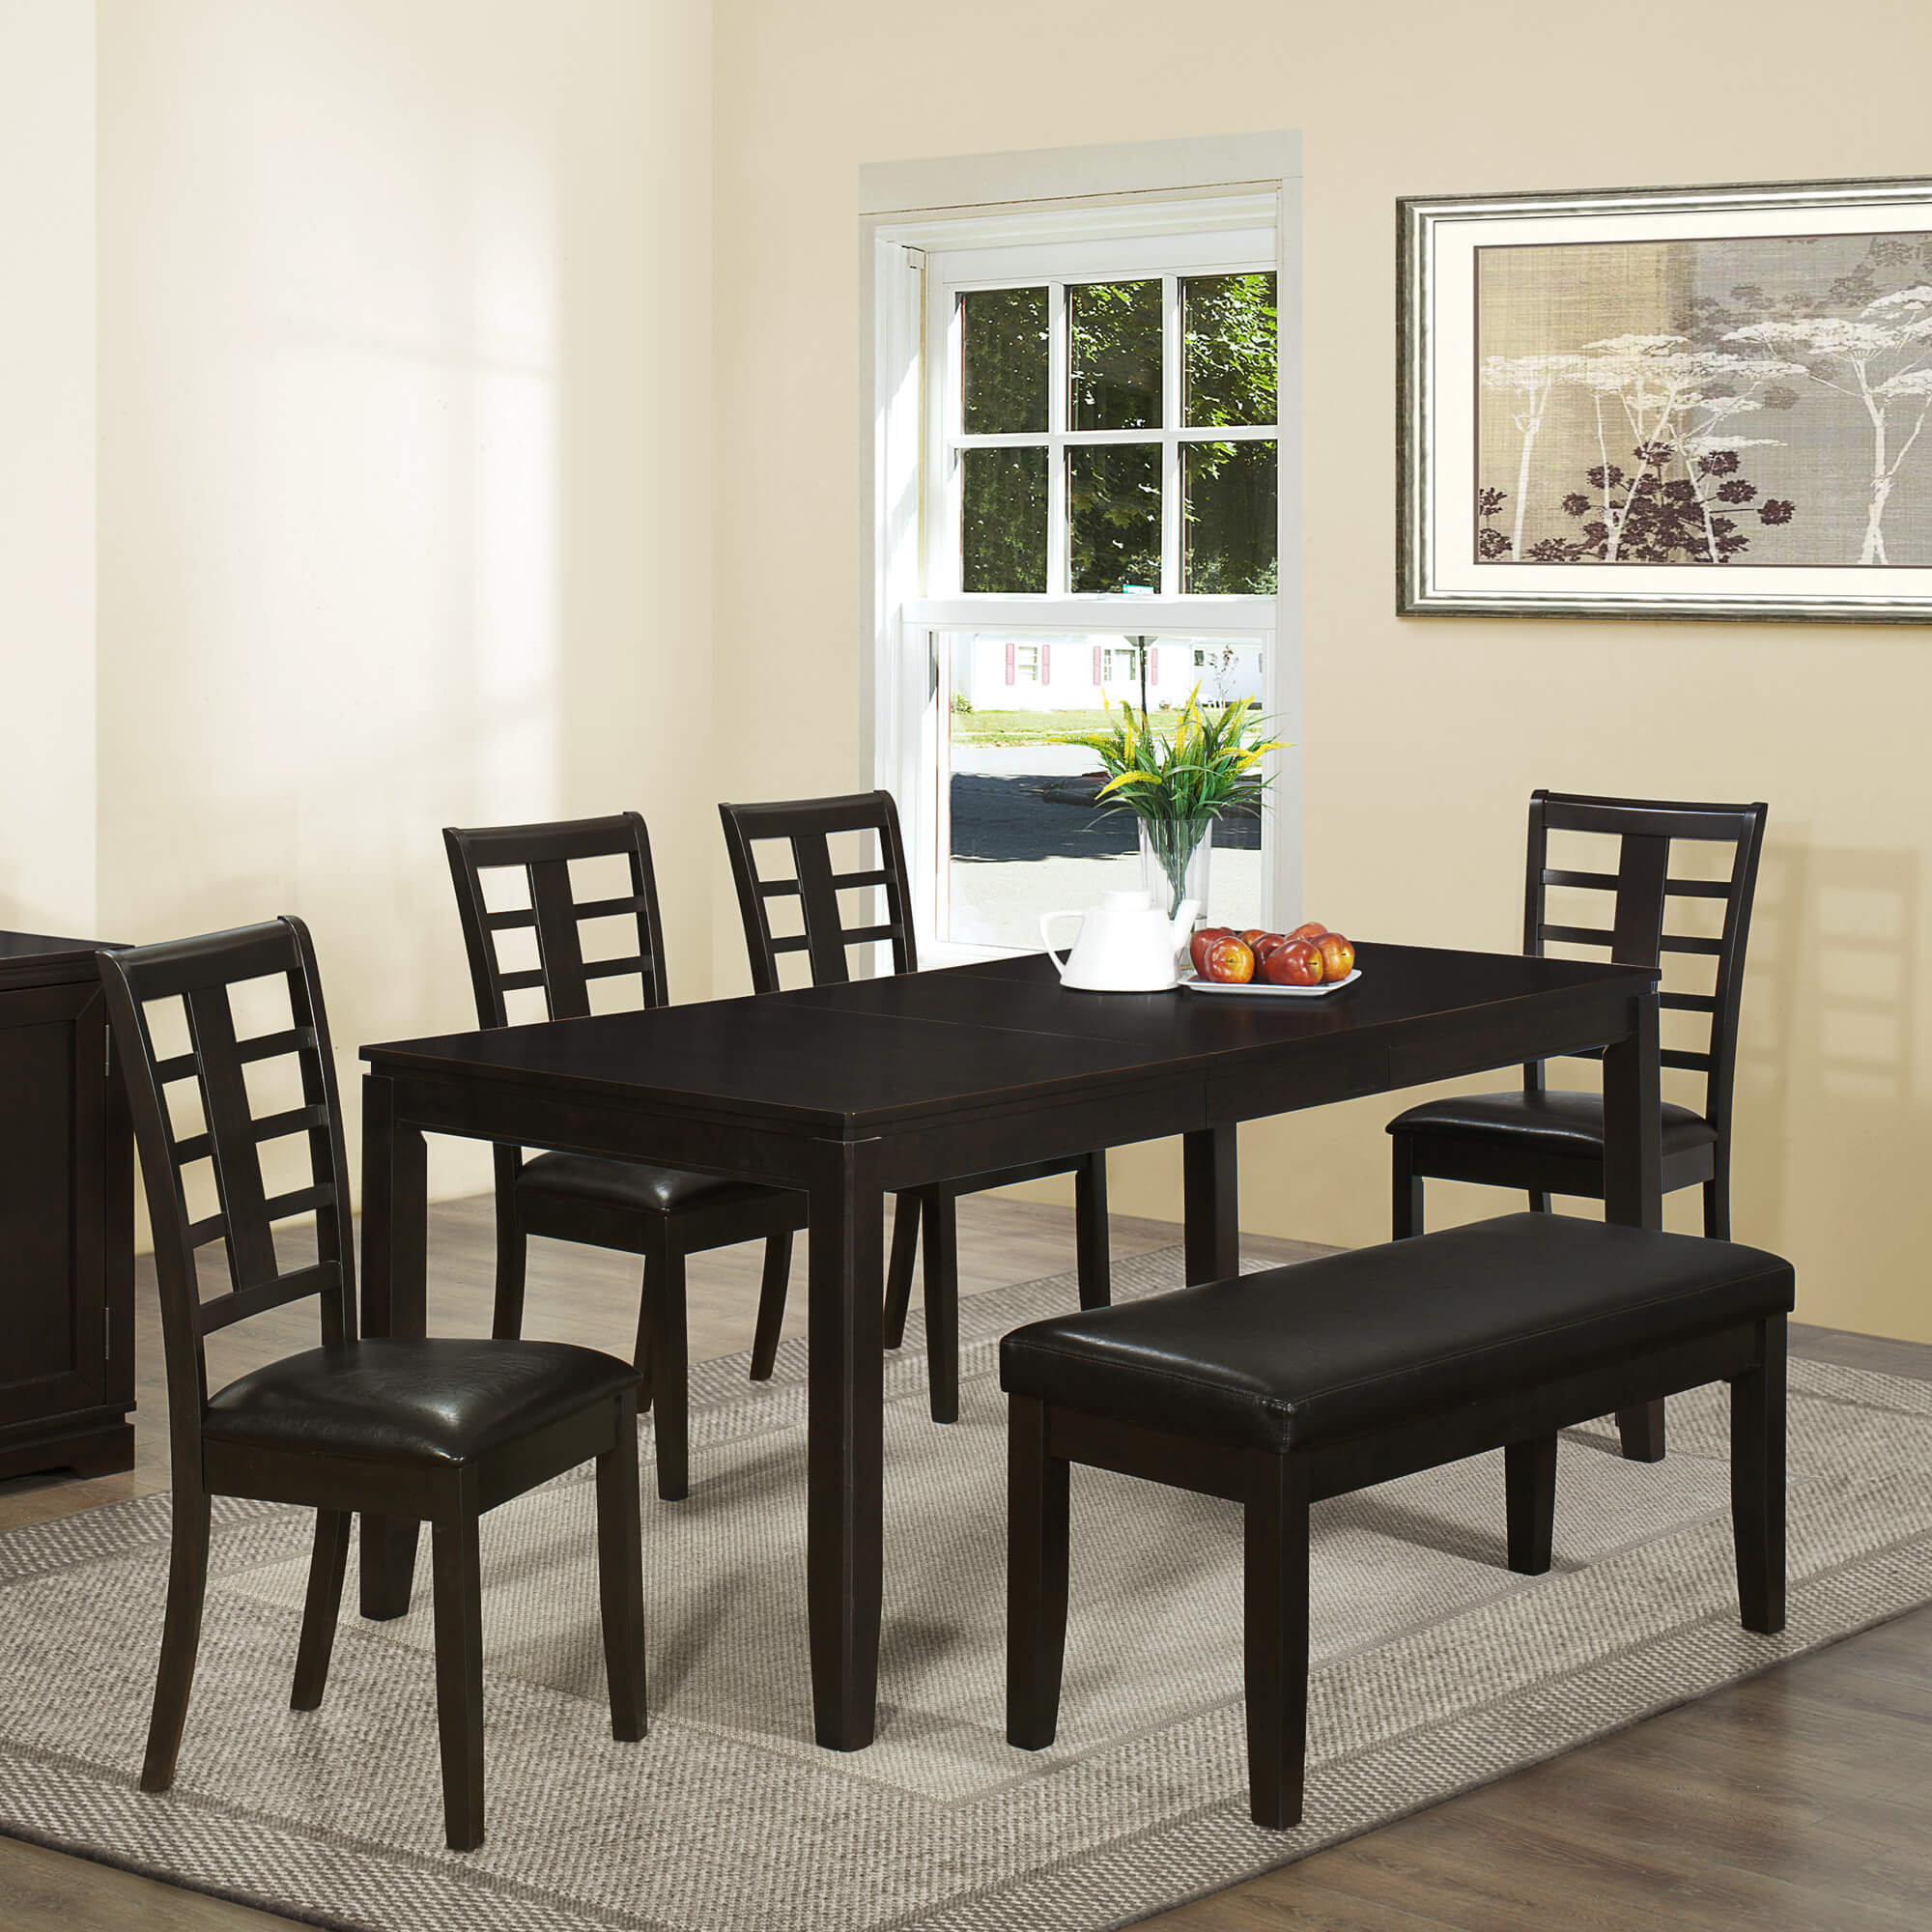 26 big small dining room sets with bench seating for Big dining table in small space